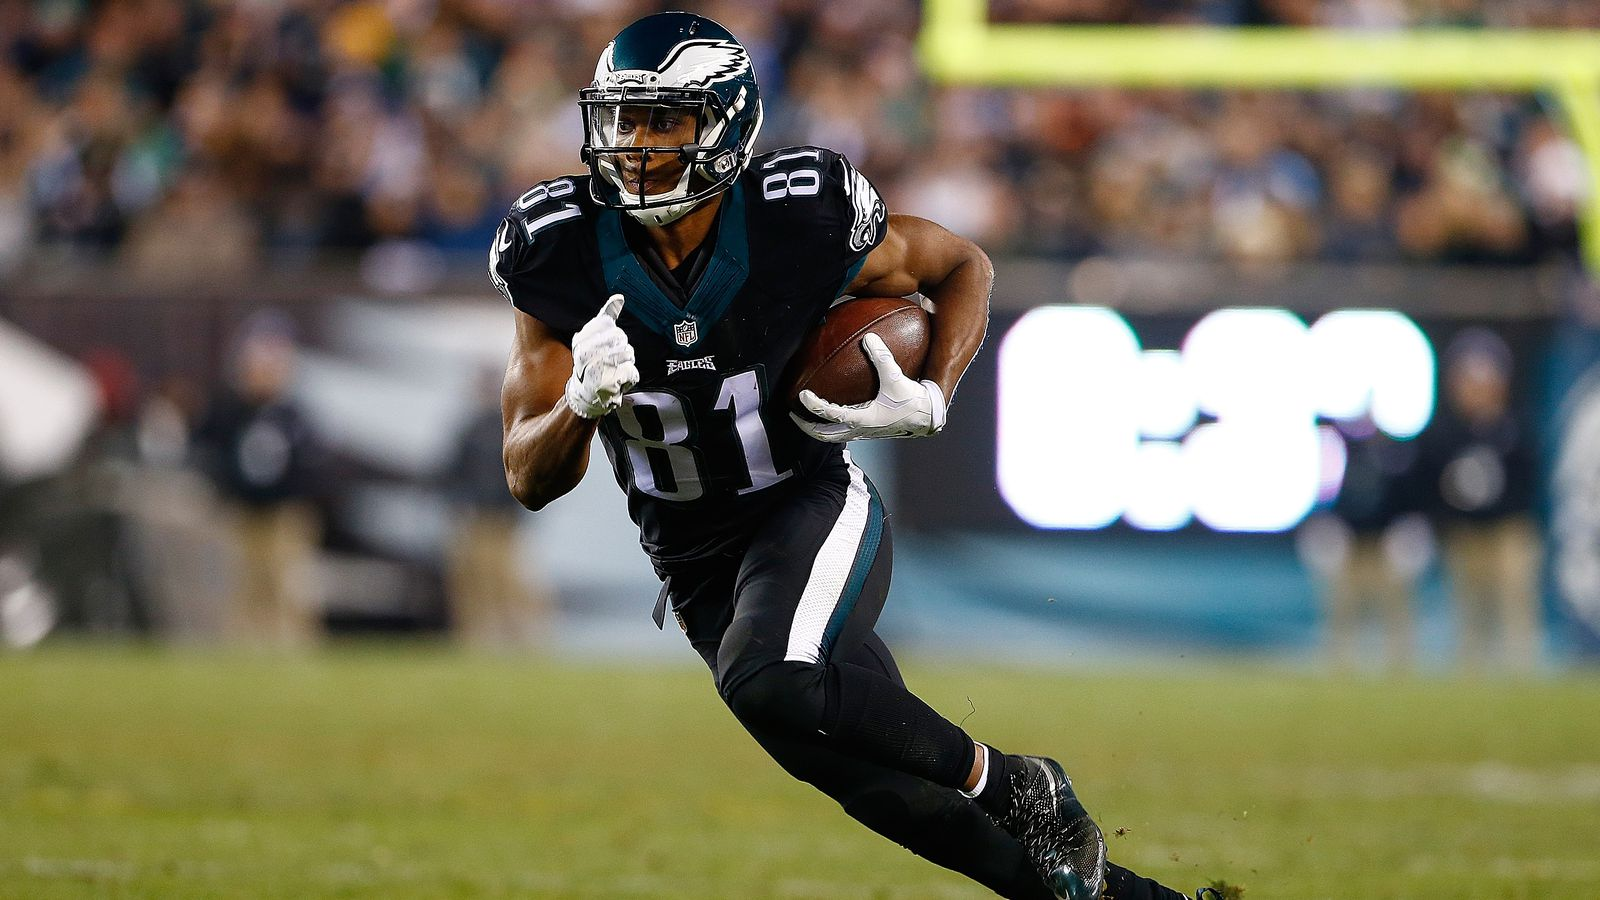 Jordan Matthews 2018 player profile game log season stats career stats recent news If you play fantasy sports get breaking news and immerse yourself in the